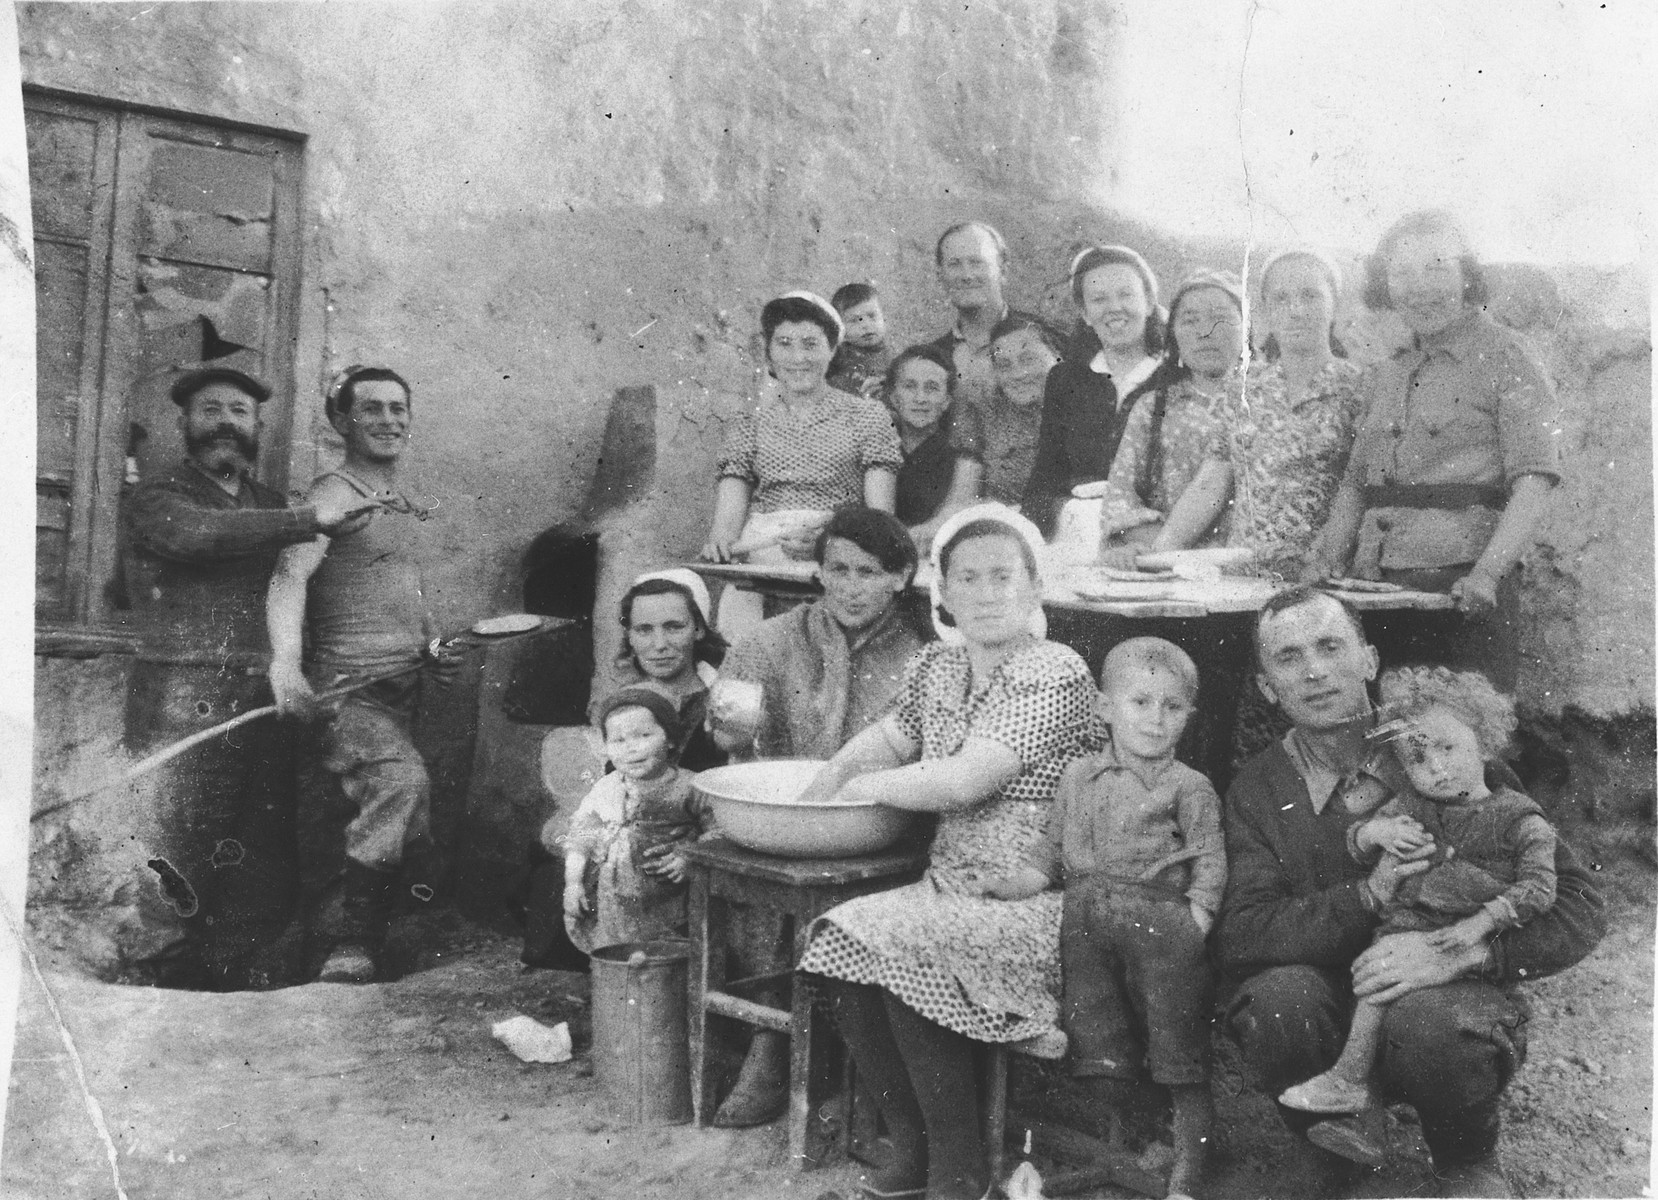 Polish Jews refugees who spent World War II in the Soviet interior, bake matzah for the Passover holiday.  Among those pictured are Joseph Bankir (top row, next to the boy), Israel Bankir (top row, the little boy), Pola Bankir (second row from the top, left), Mojzesz Szczukowski (second from the left, holding the shovel), Hela (Krakower) Szczukowski (front row, left, holding the child, Malka Szczukowski).